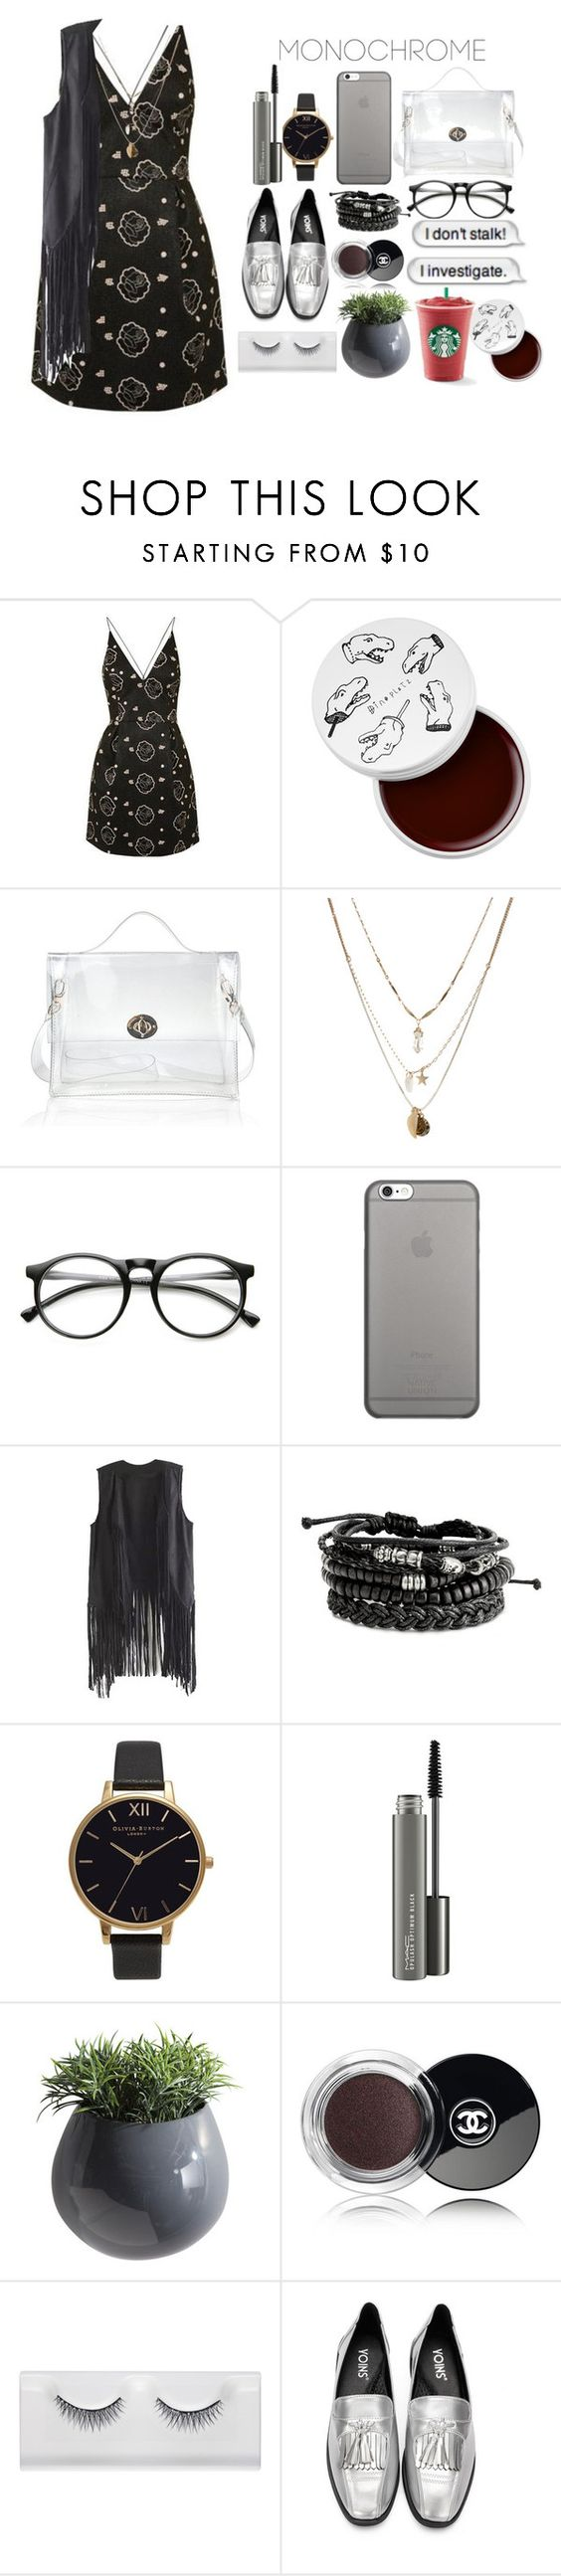 """""""Look by:Melanie"""" by melanie-pacheco ❤ liked on Polyvore featuring Topshop, too cool for school, Orelia, INDIE HAIR, Native Union, Olivia Burton, MAC Cosmetics, Dot & Bo and Chanel"""